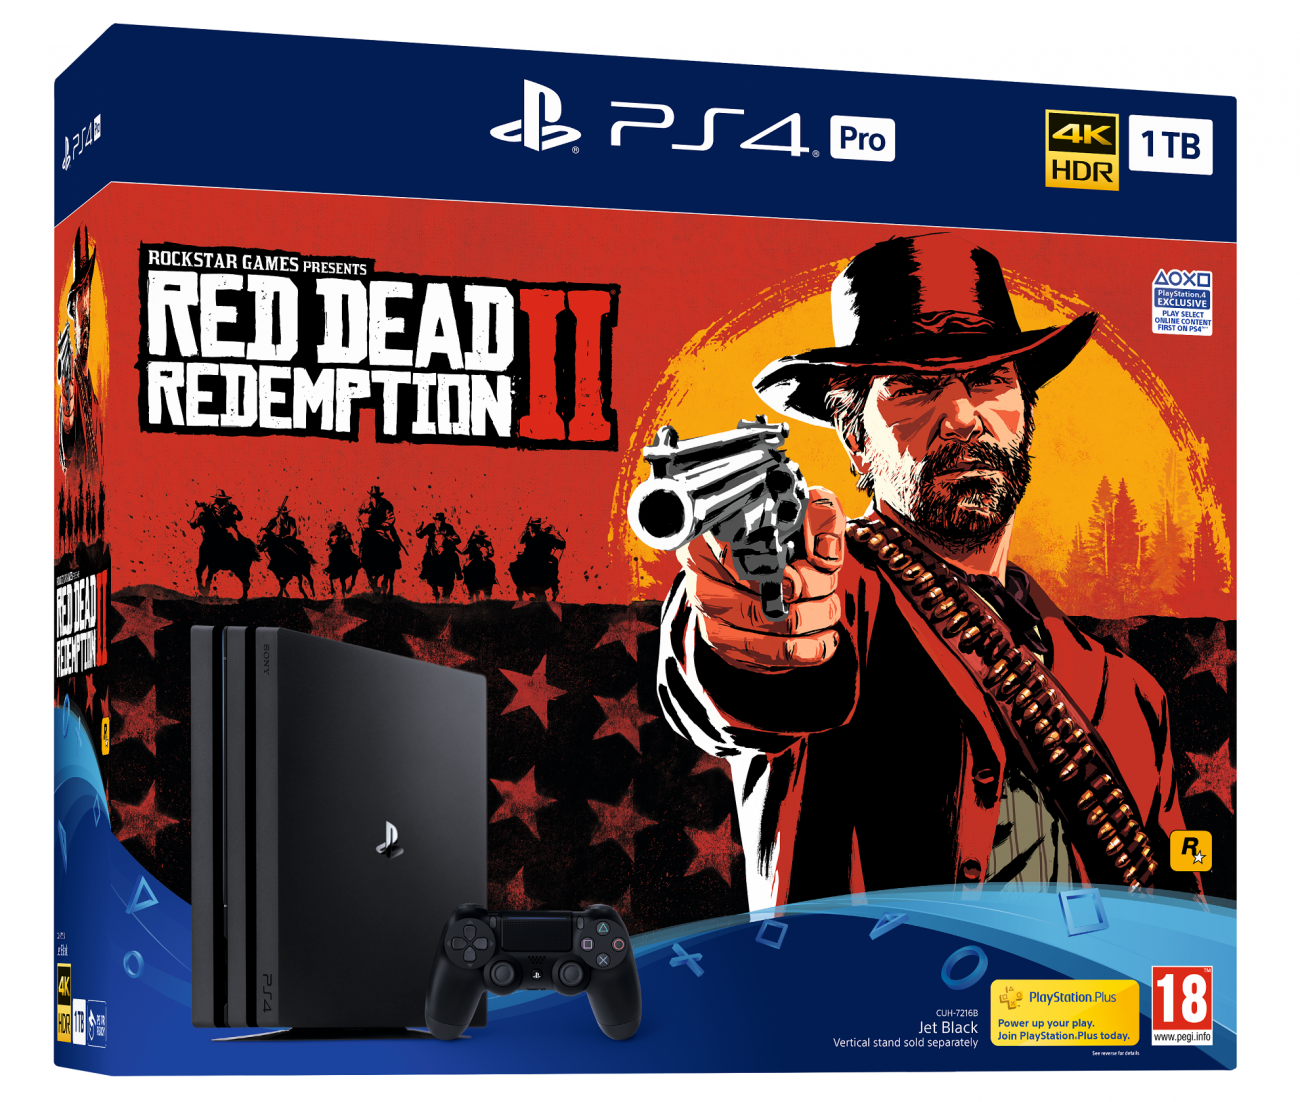 Sony PS4 Slim и PS4 Pro комплект с Red Dead Redemption 2